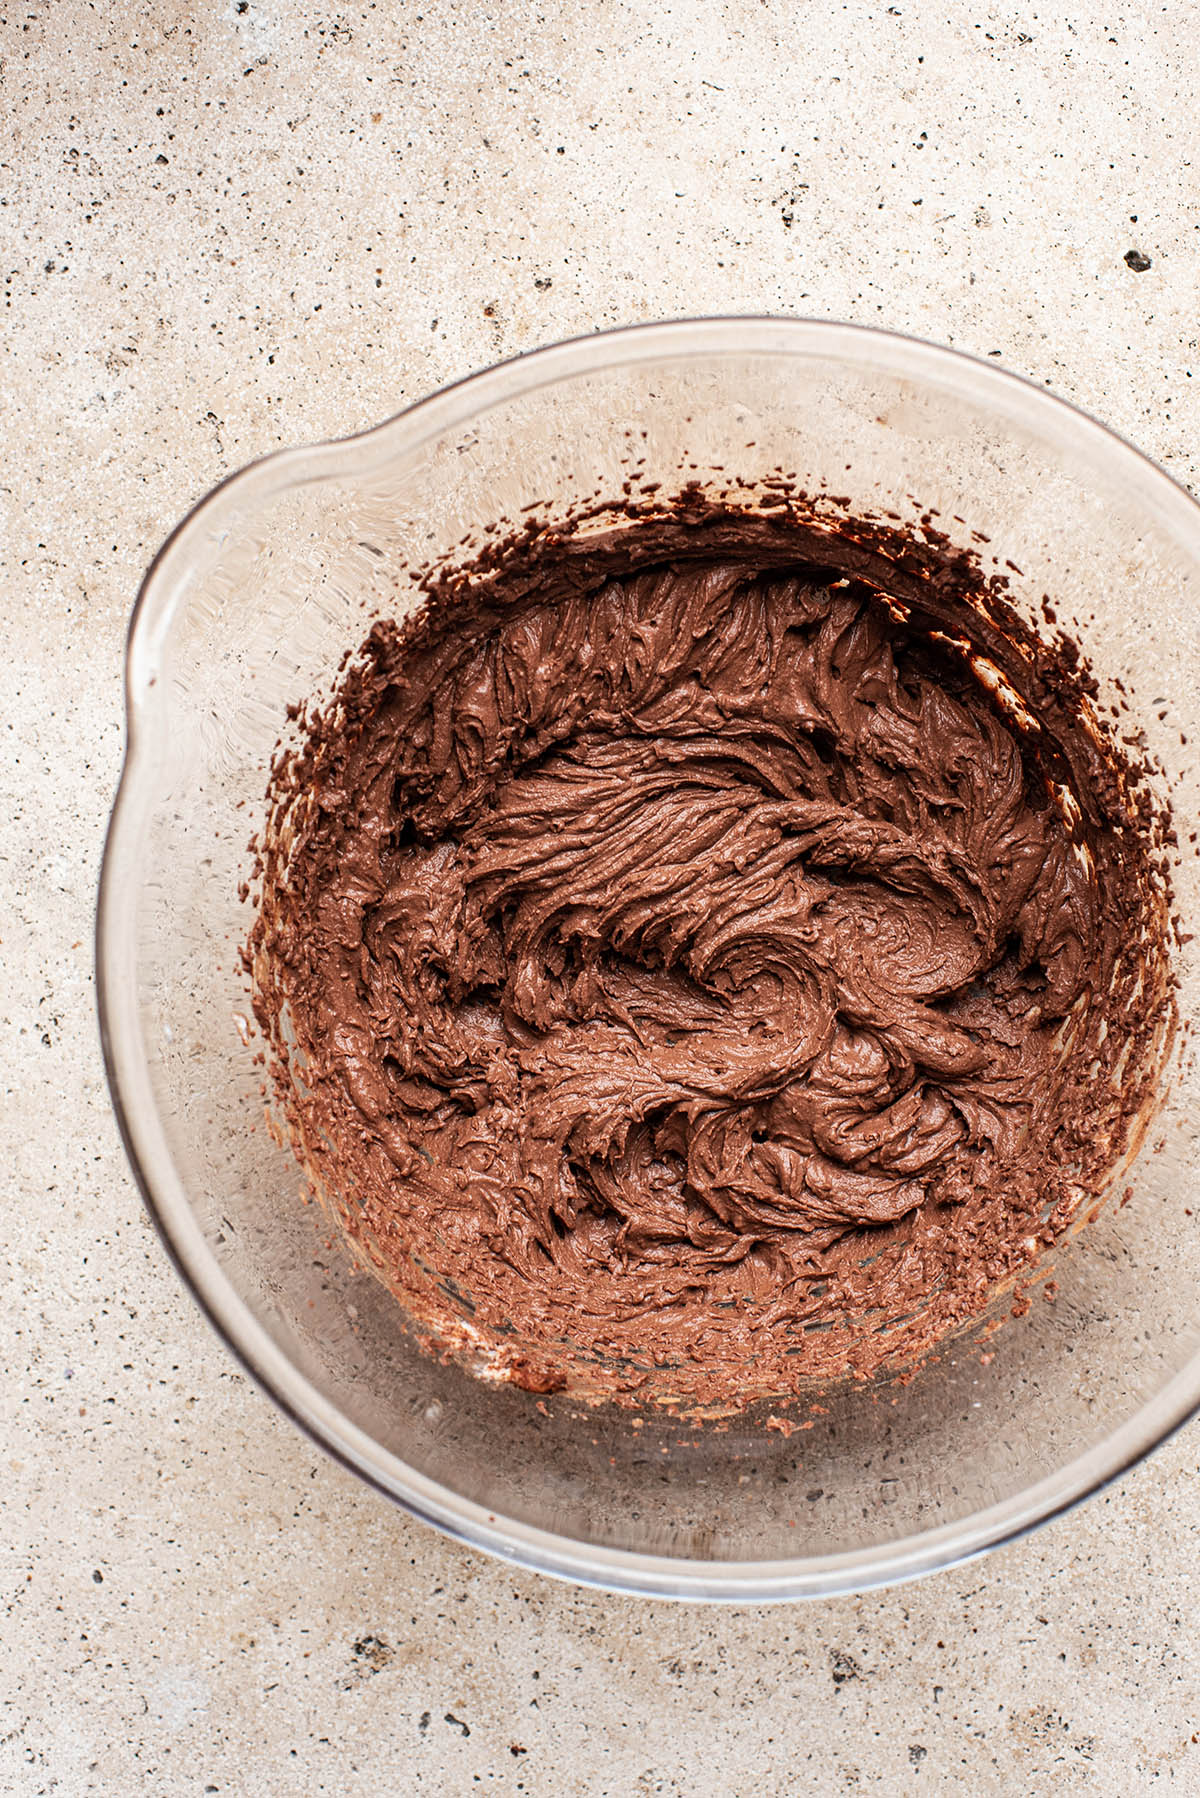 Chocolate mousse whipped in a large glass bowl.